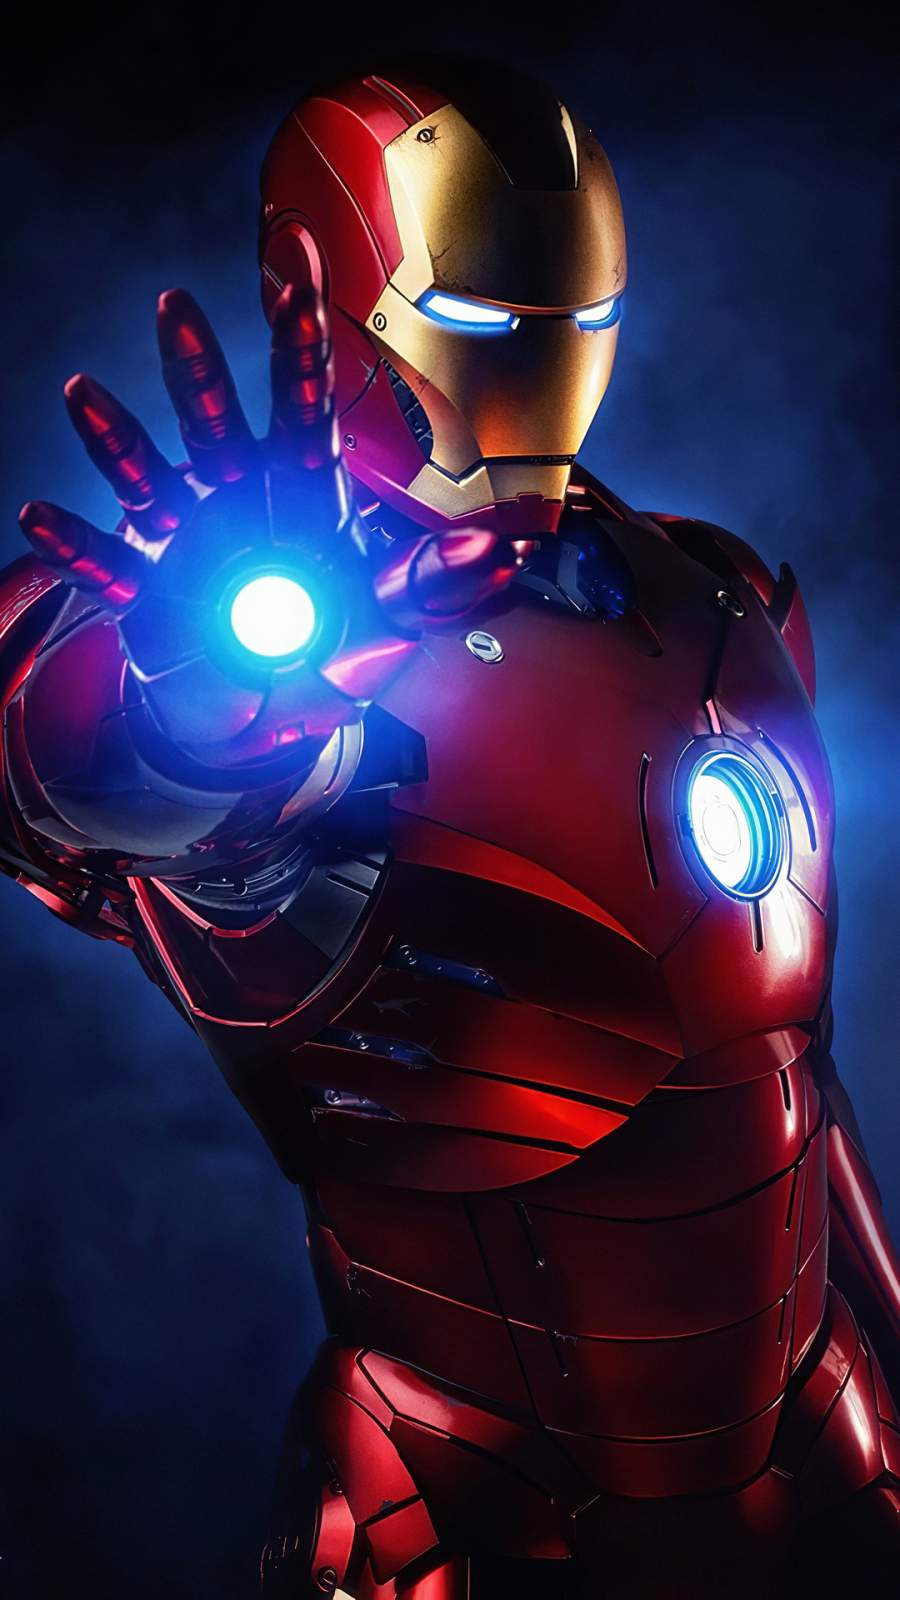 Pictures Of Cute Christmas Wallpapers Iron Man Armor 4k Iphone Wallpaper 1 Iphone Wallpapers